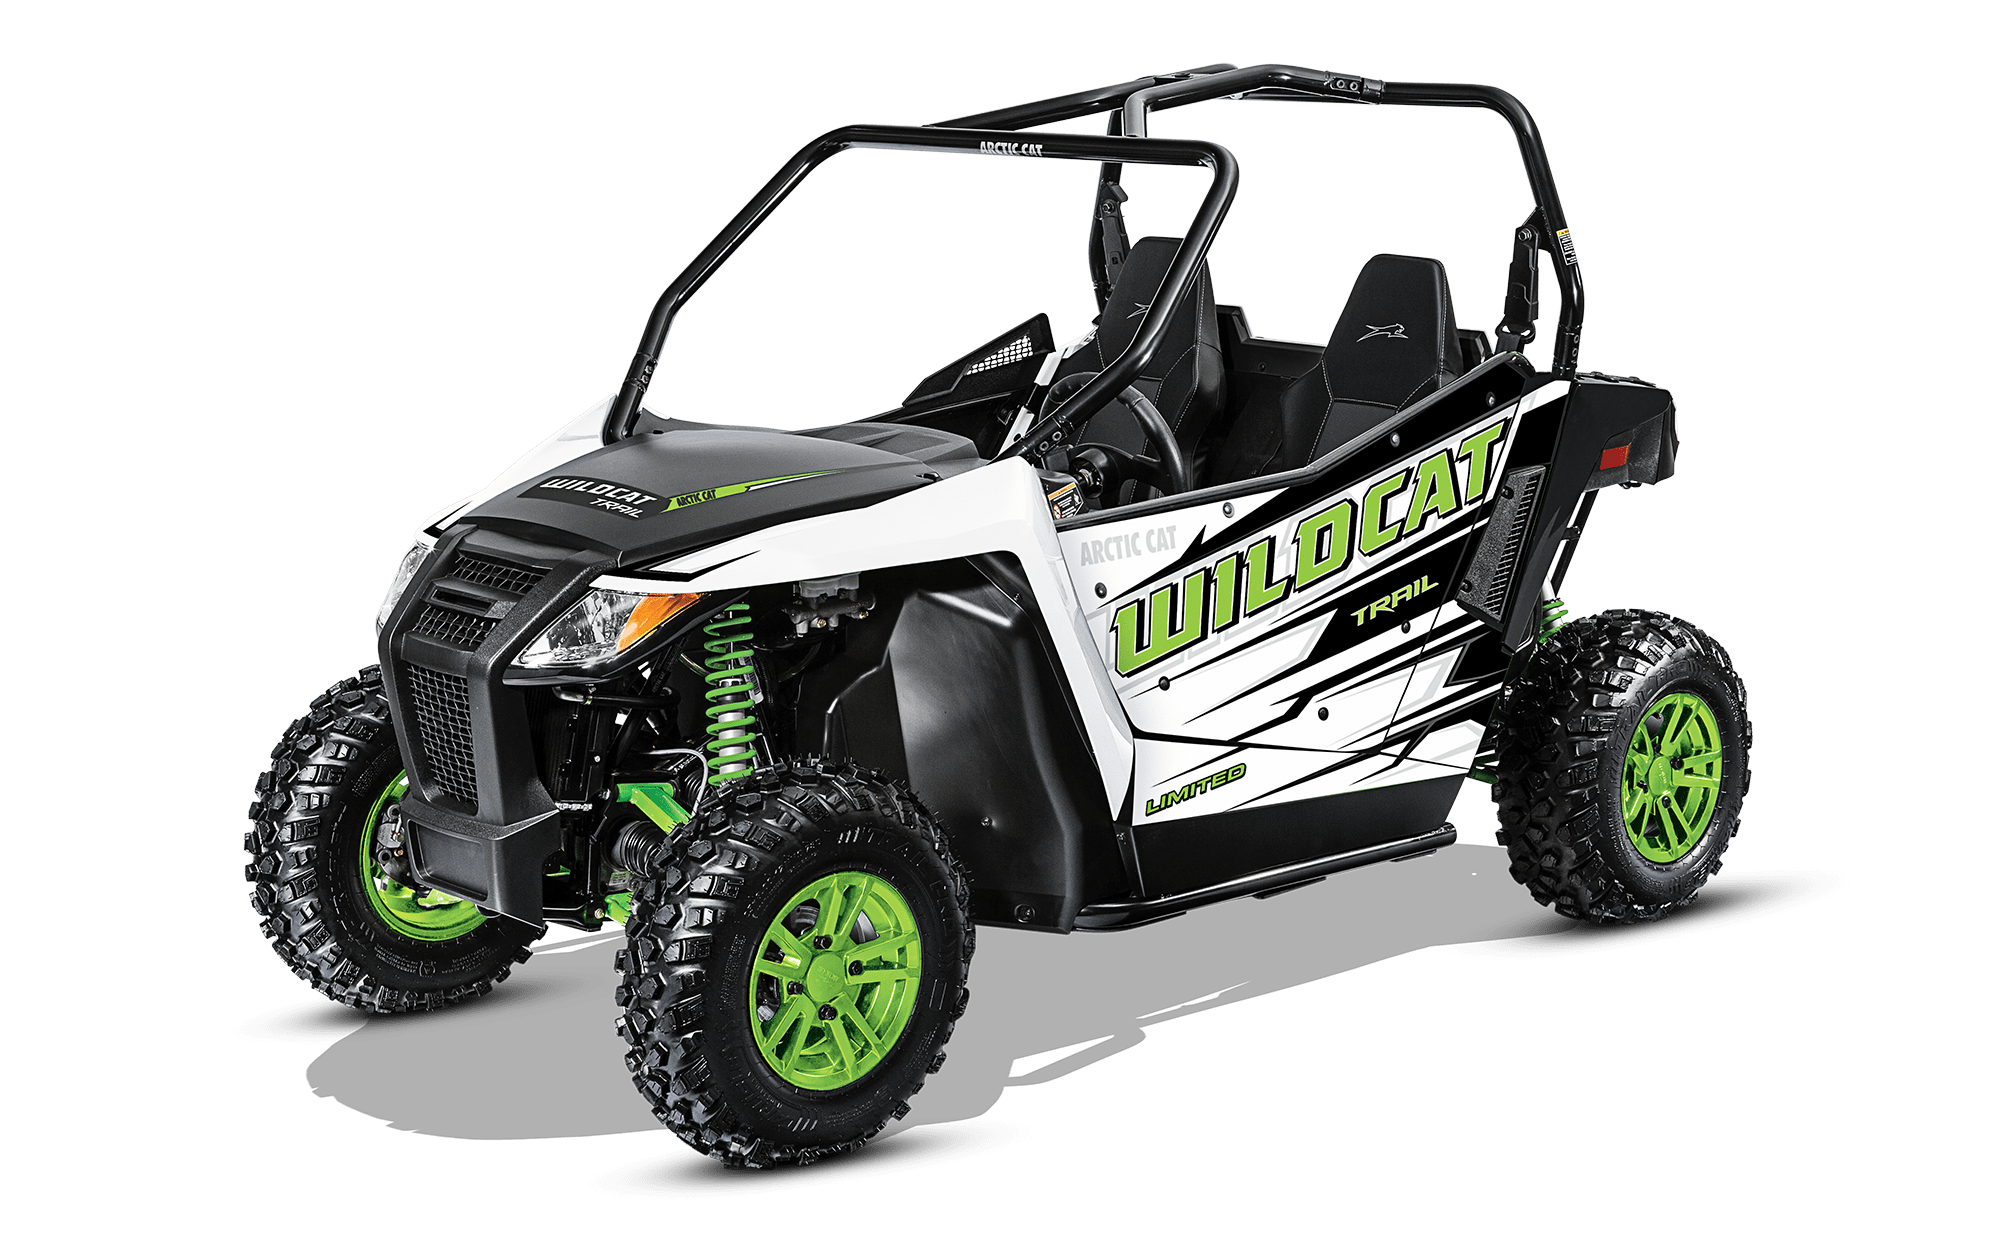 Wildcat Trail Limited EPS Arctic Cat BRAAAAPPPPP